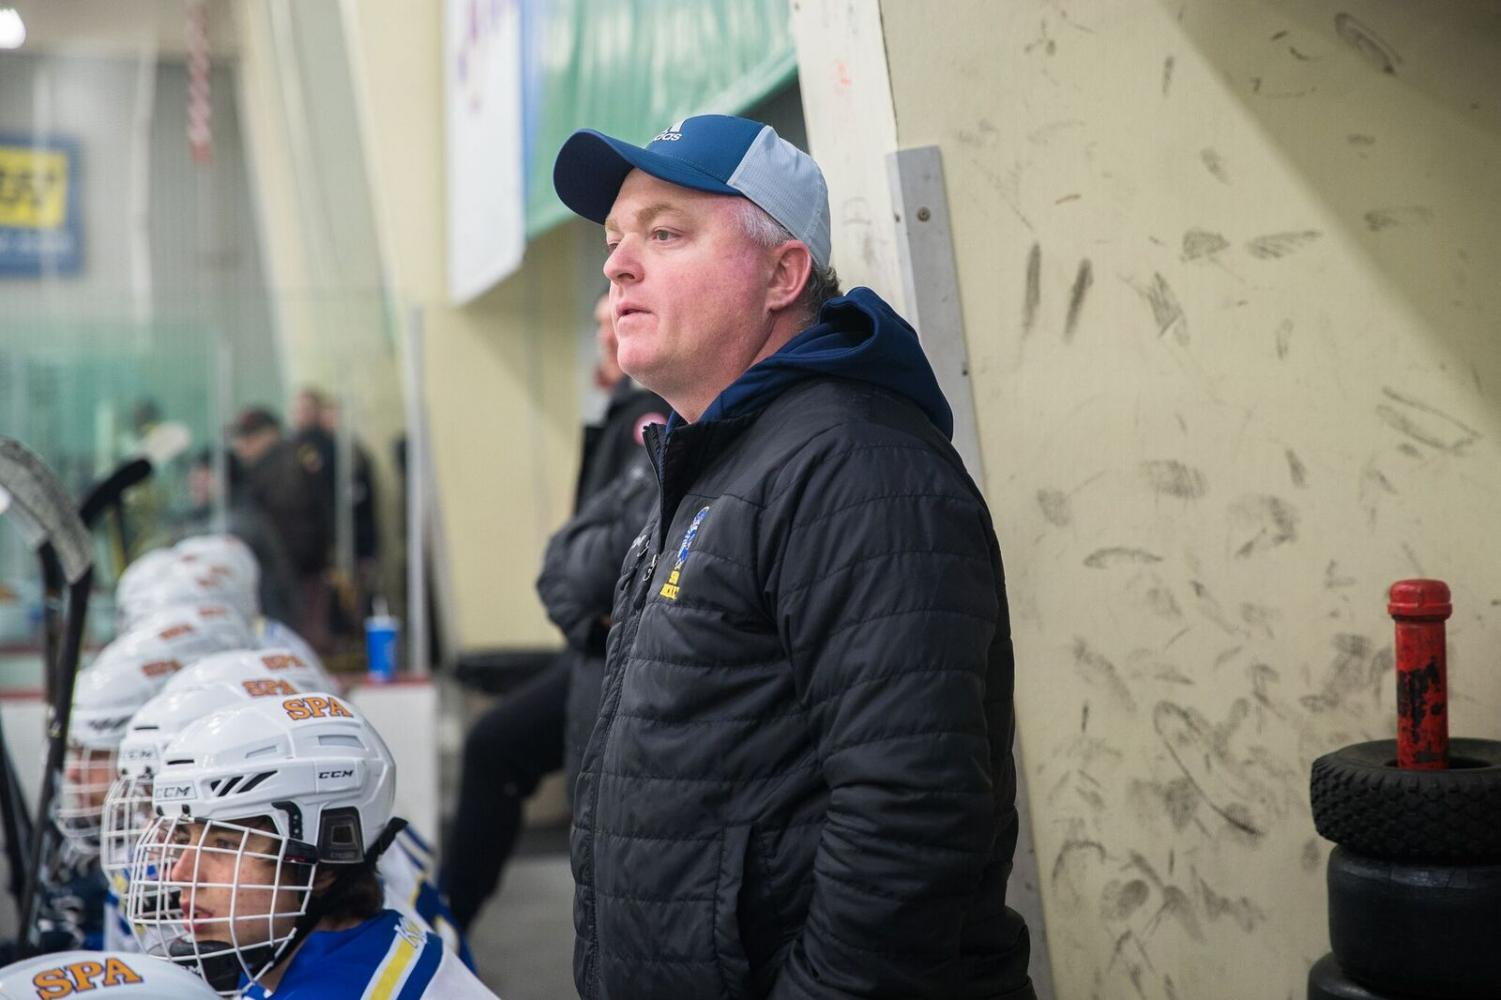 """Eddie Wynne coaching the 2017-18 team from the bench. He will be back to coaching from the bench this year, this time as head coach """"There's a lot of comradery, and chemistry with him being back"""" - Julie Friend."""